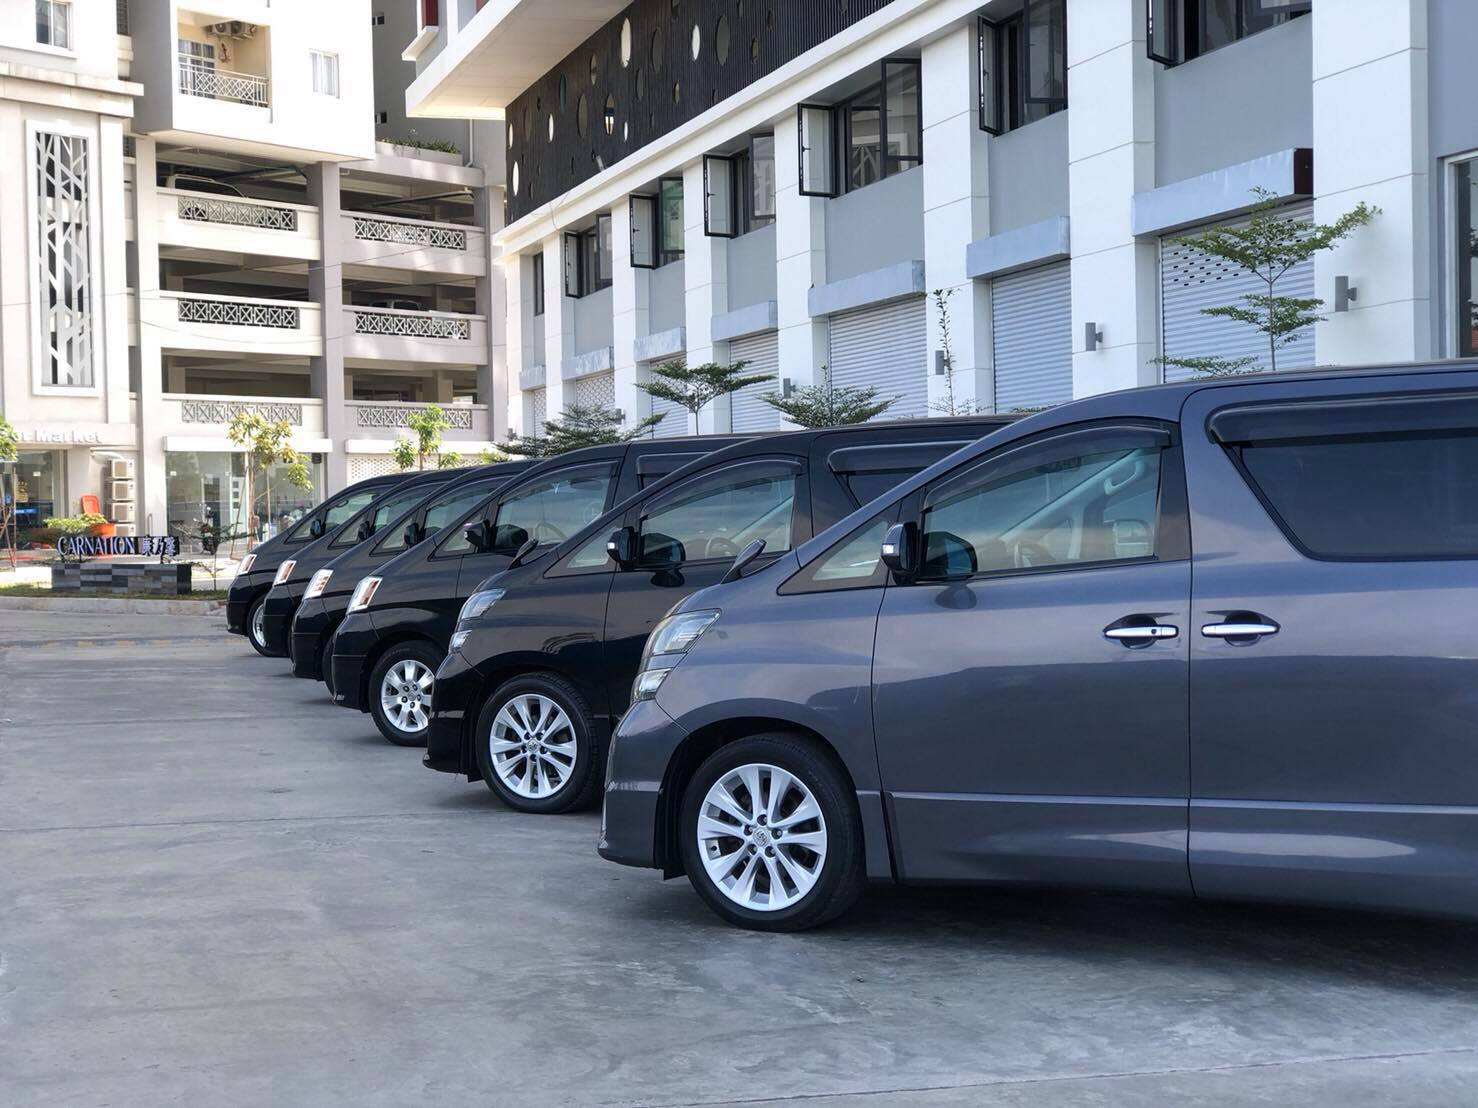 Our new fleet in Phnom Penh